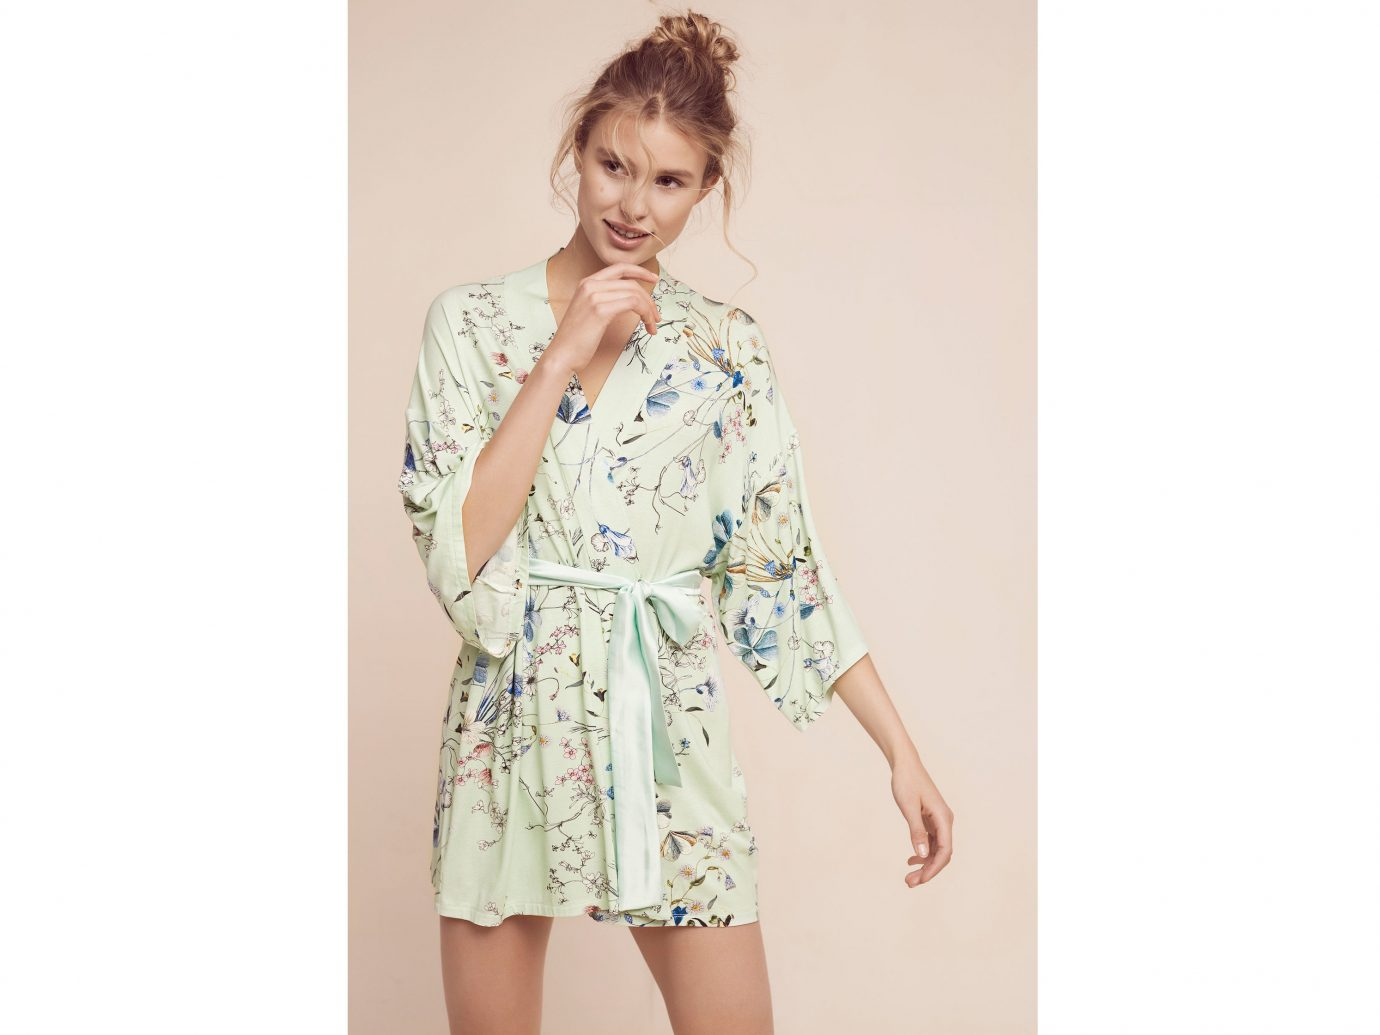 Style + Design clothing person indoor sleeve dress standing girl outerwear spring gown pattern blouse photo shoot textile robe costume Design posing trouser